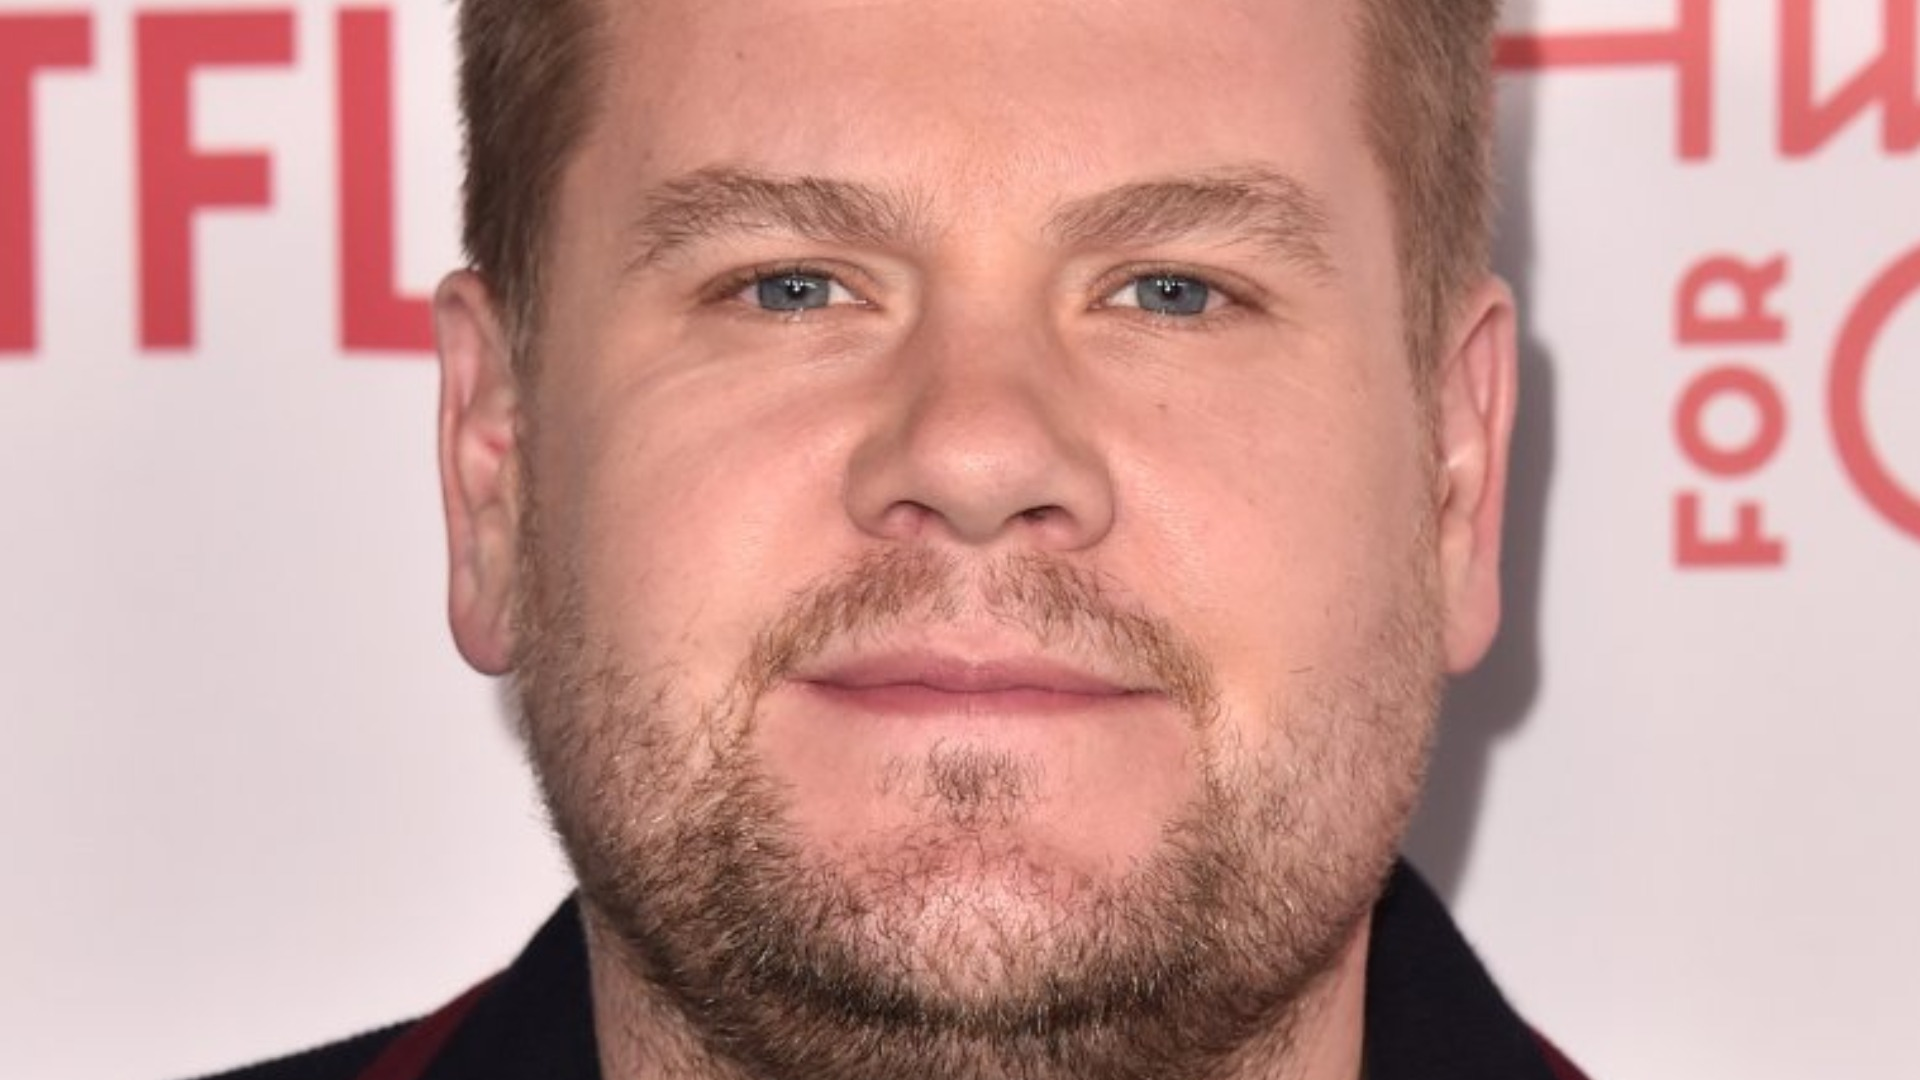 James Corden Revealed The Rudest Celebrity He's Ever Met